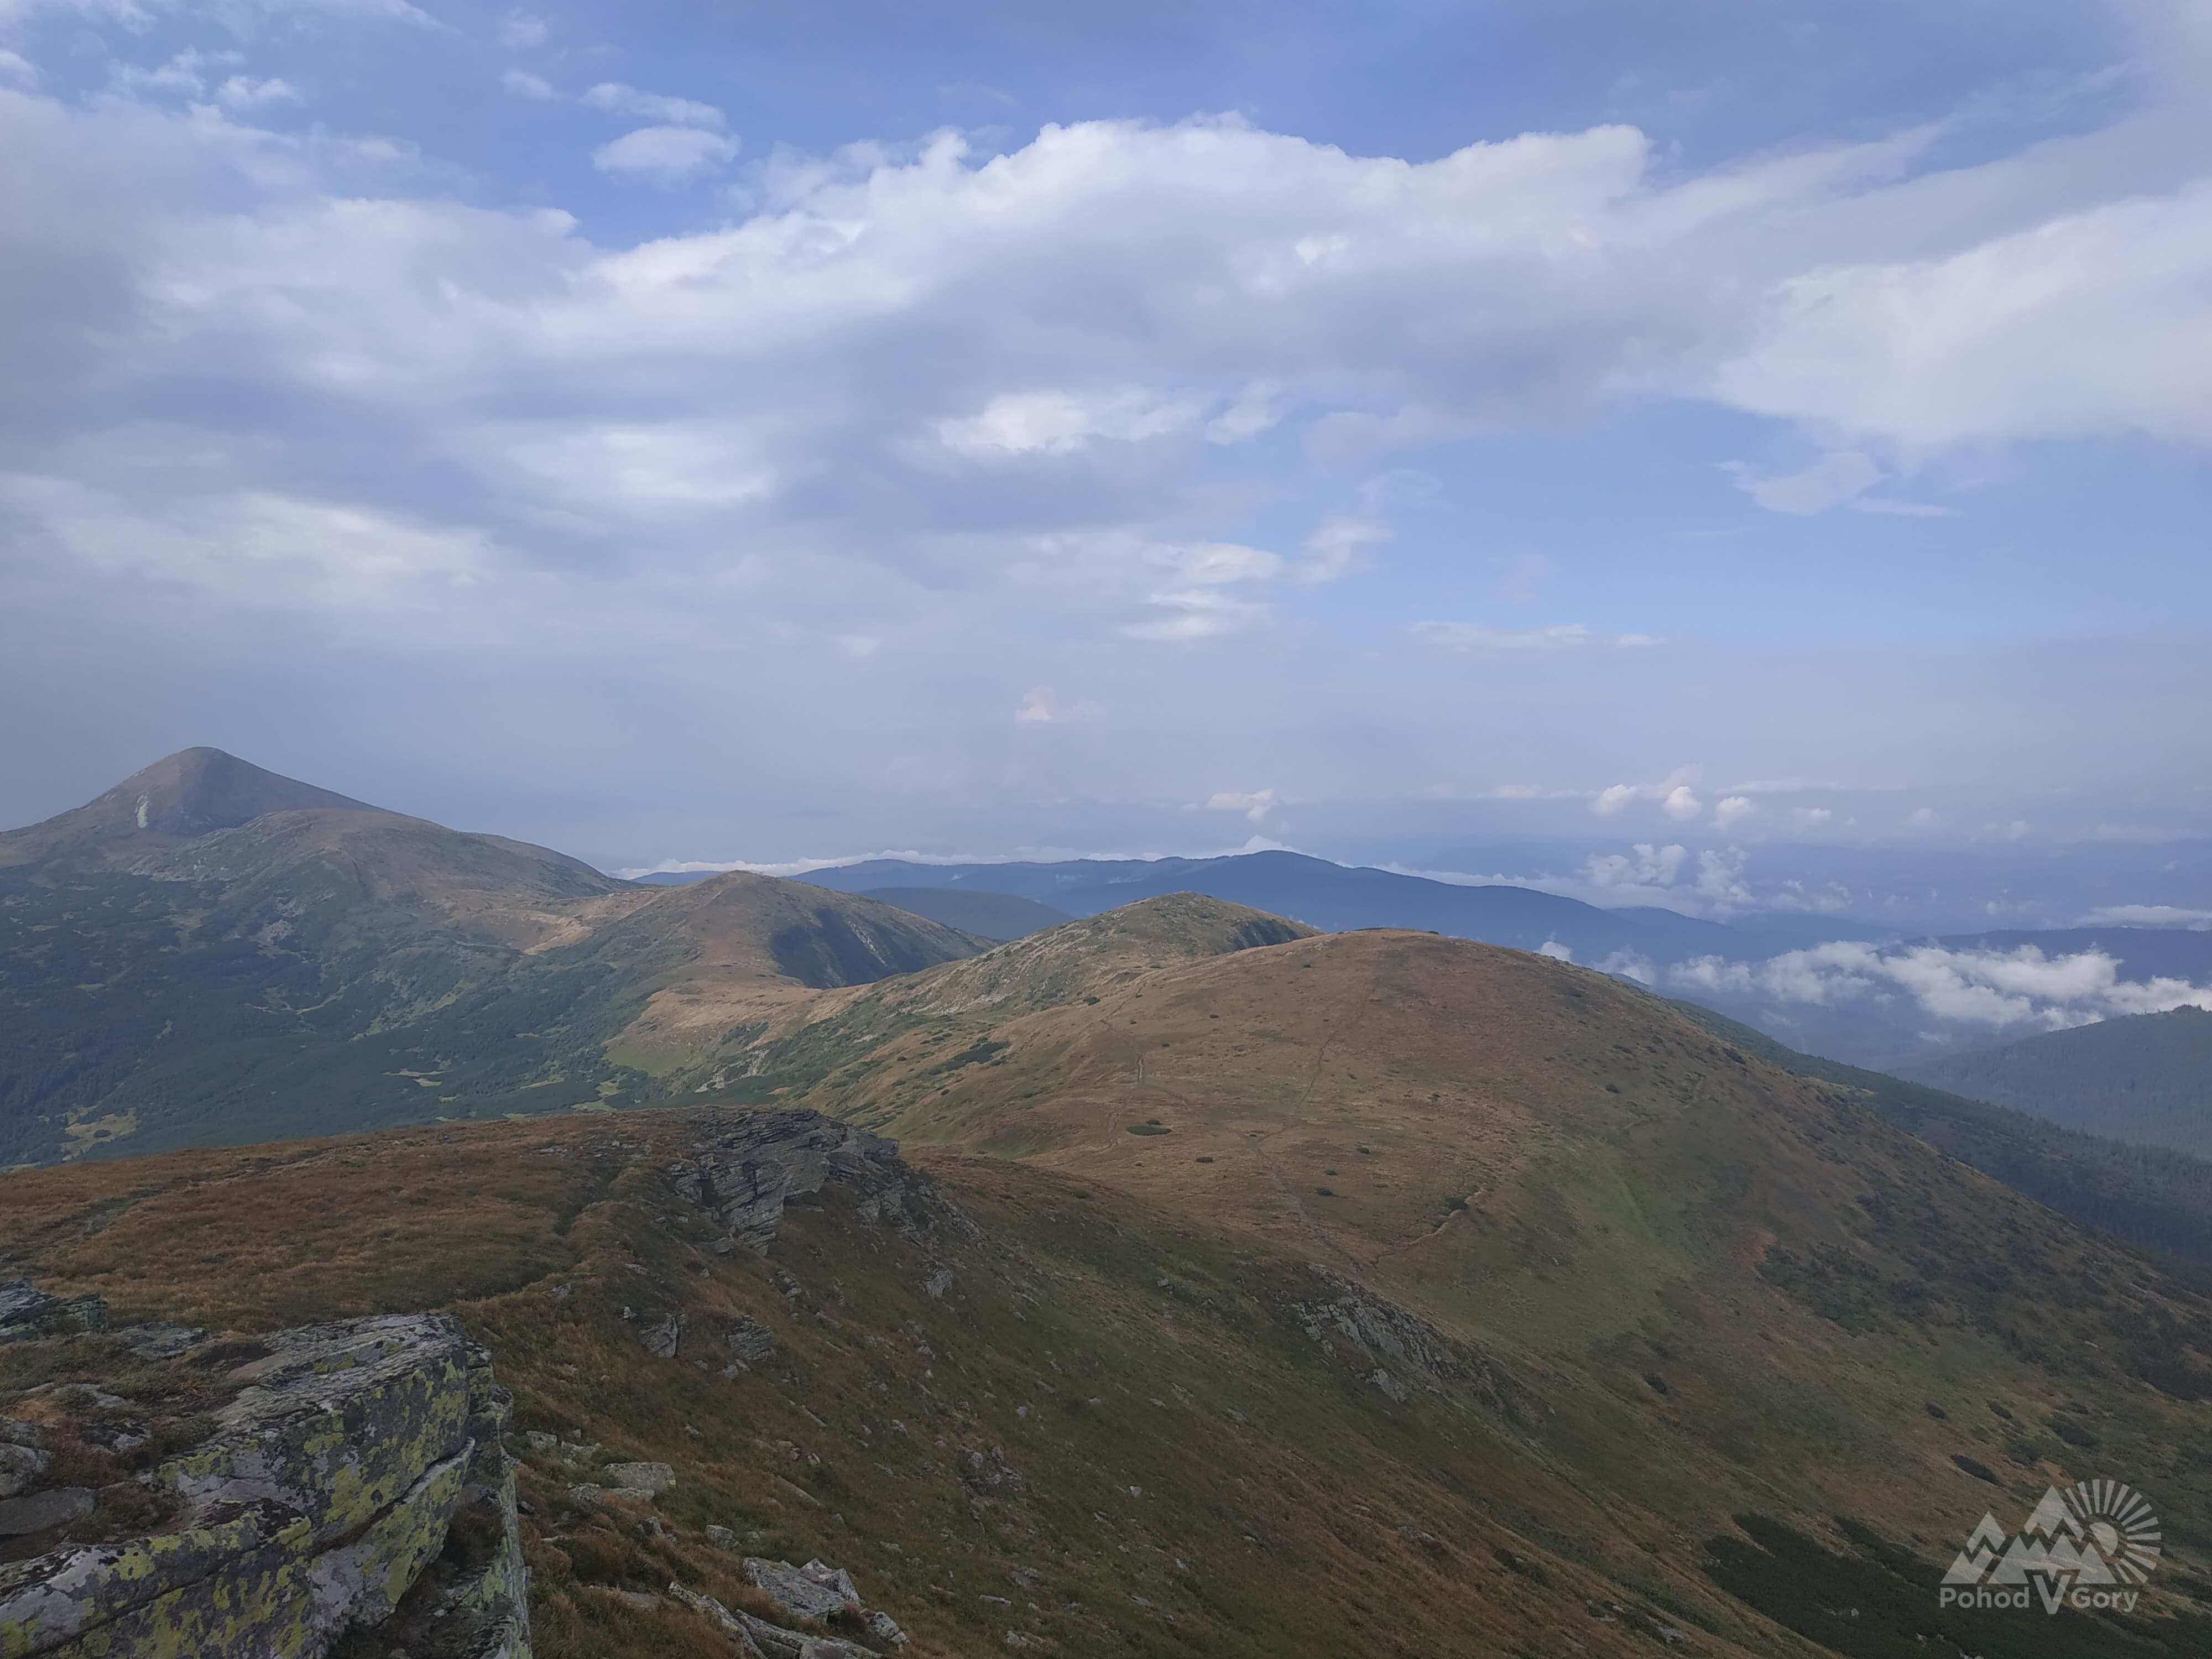 Mount Goverla in the Carpathians